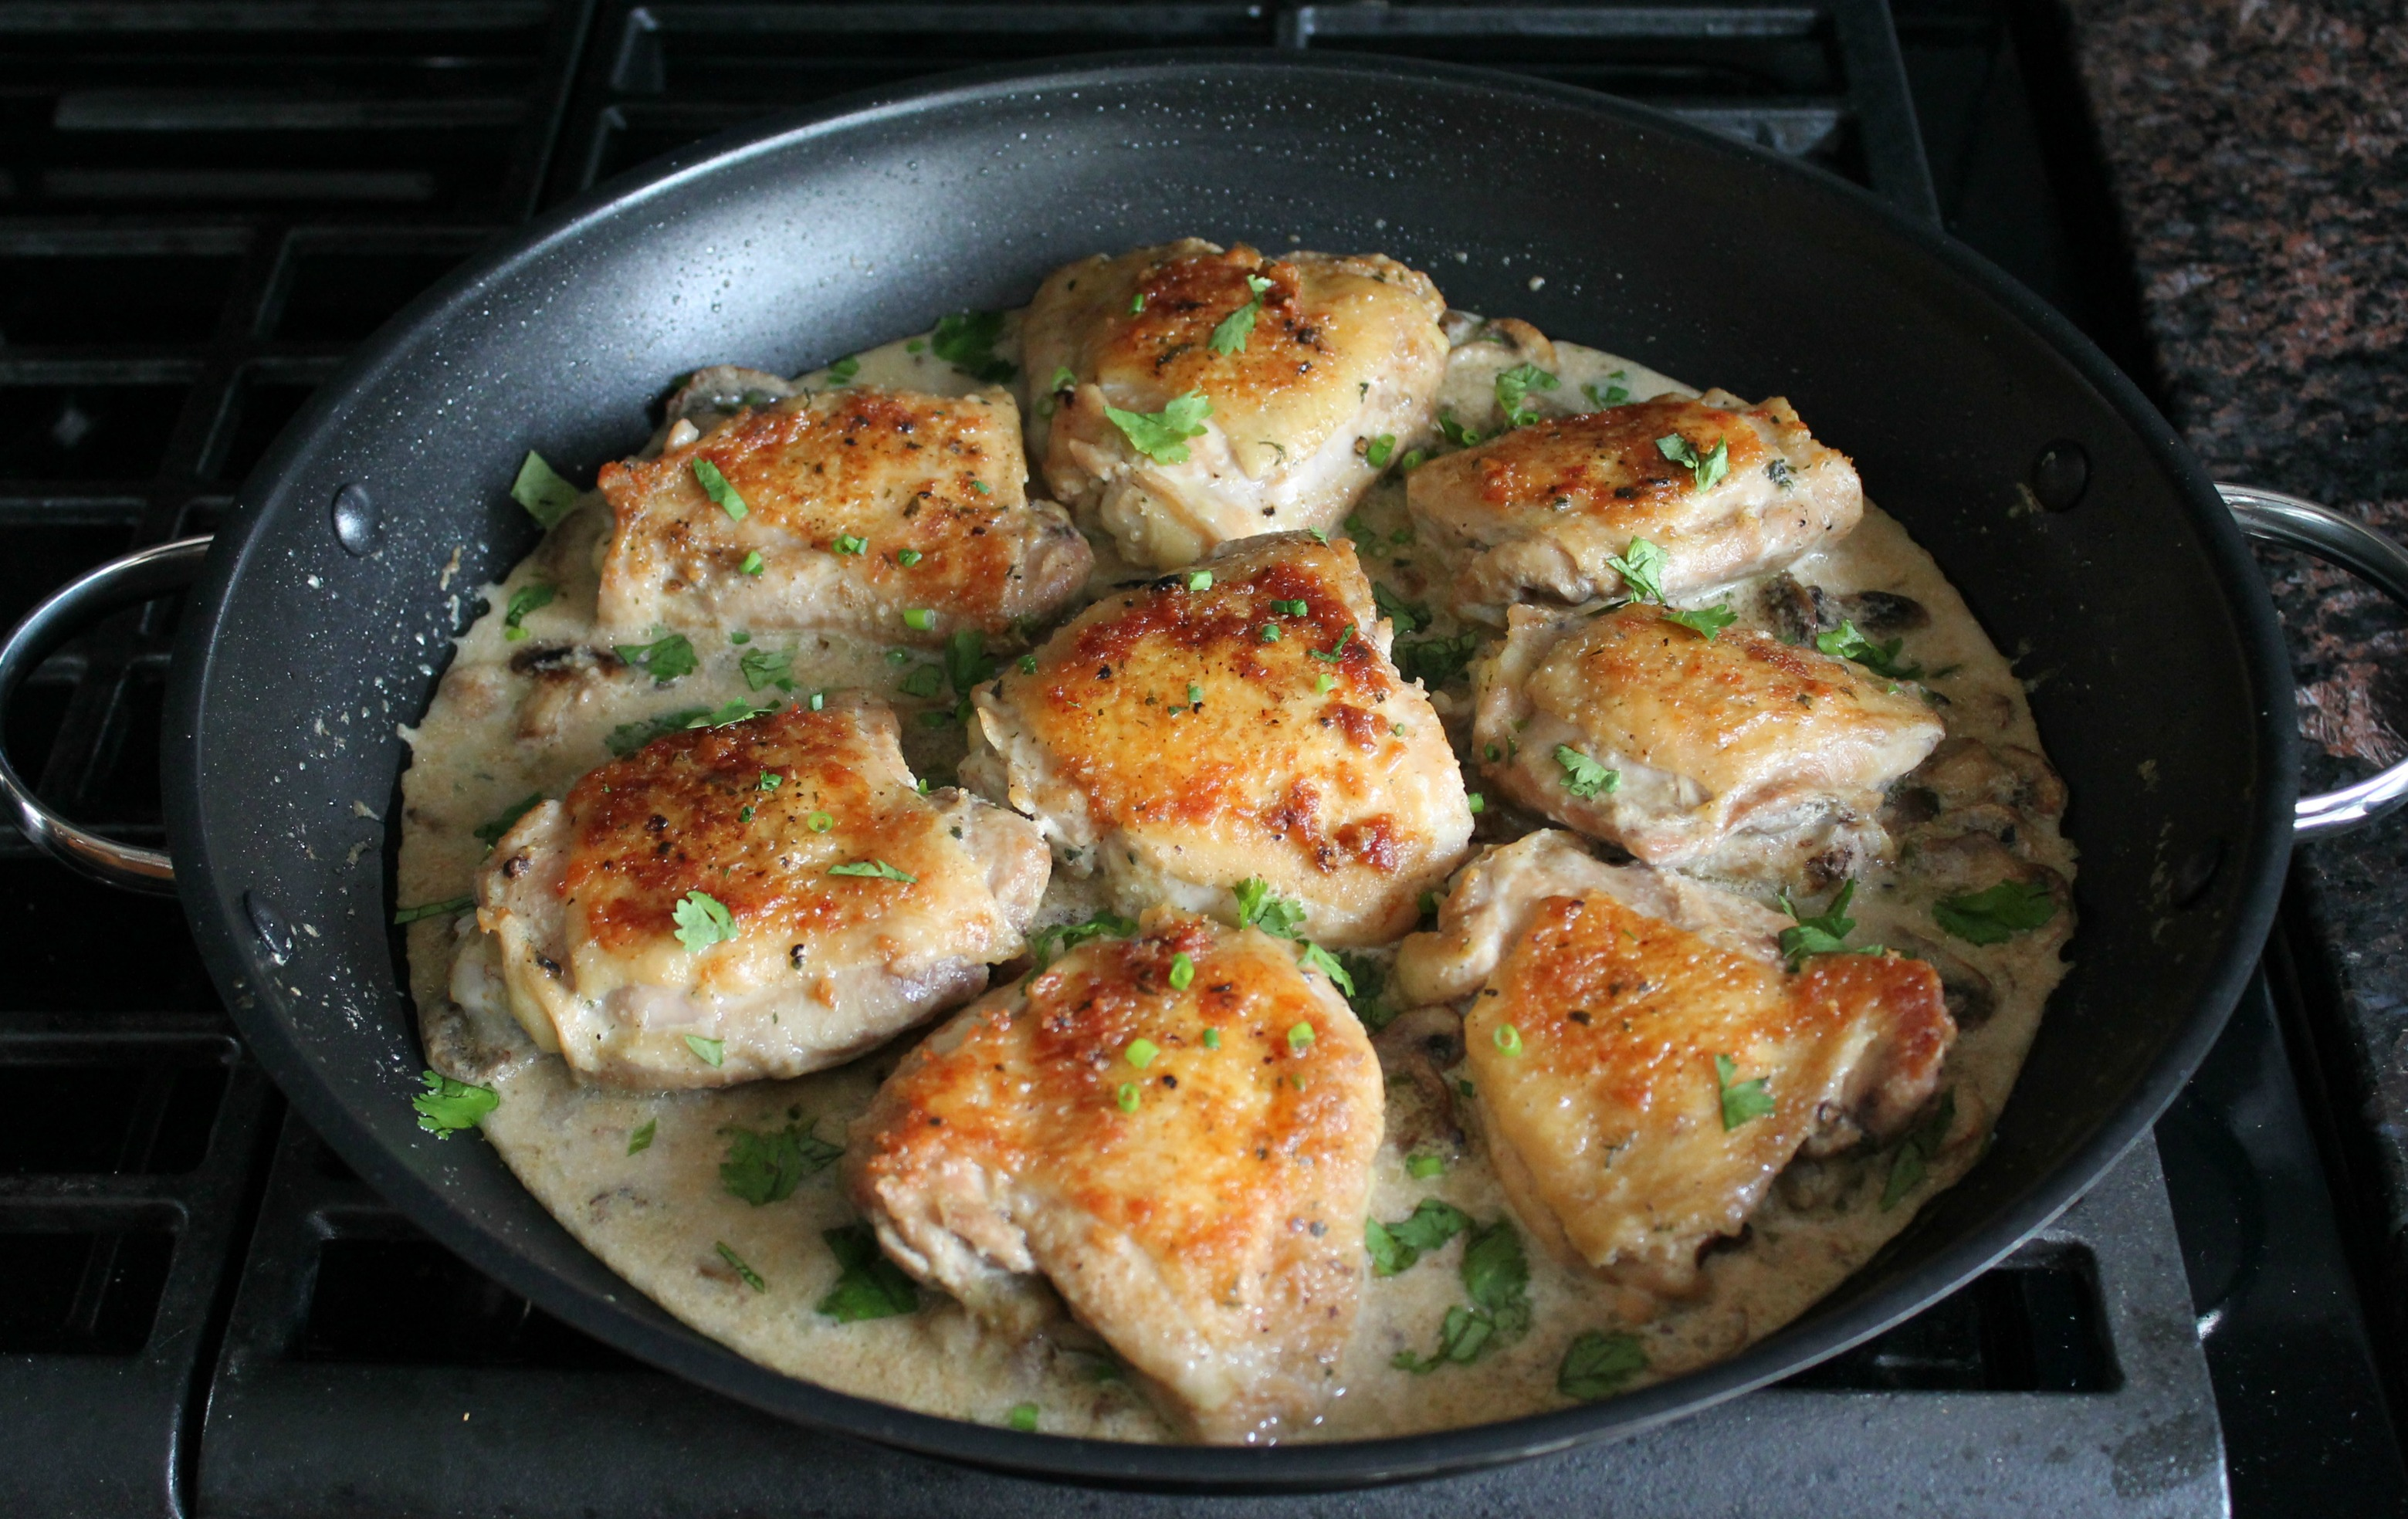 Classic Supper: Pan Fried Chicken Legs |Pan Cooked Chicken